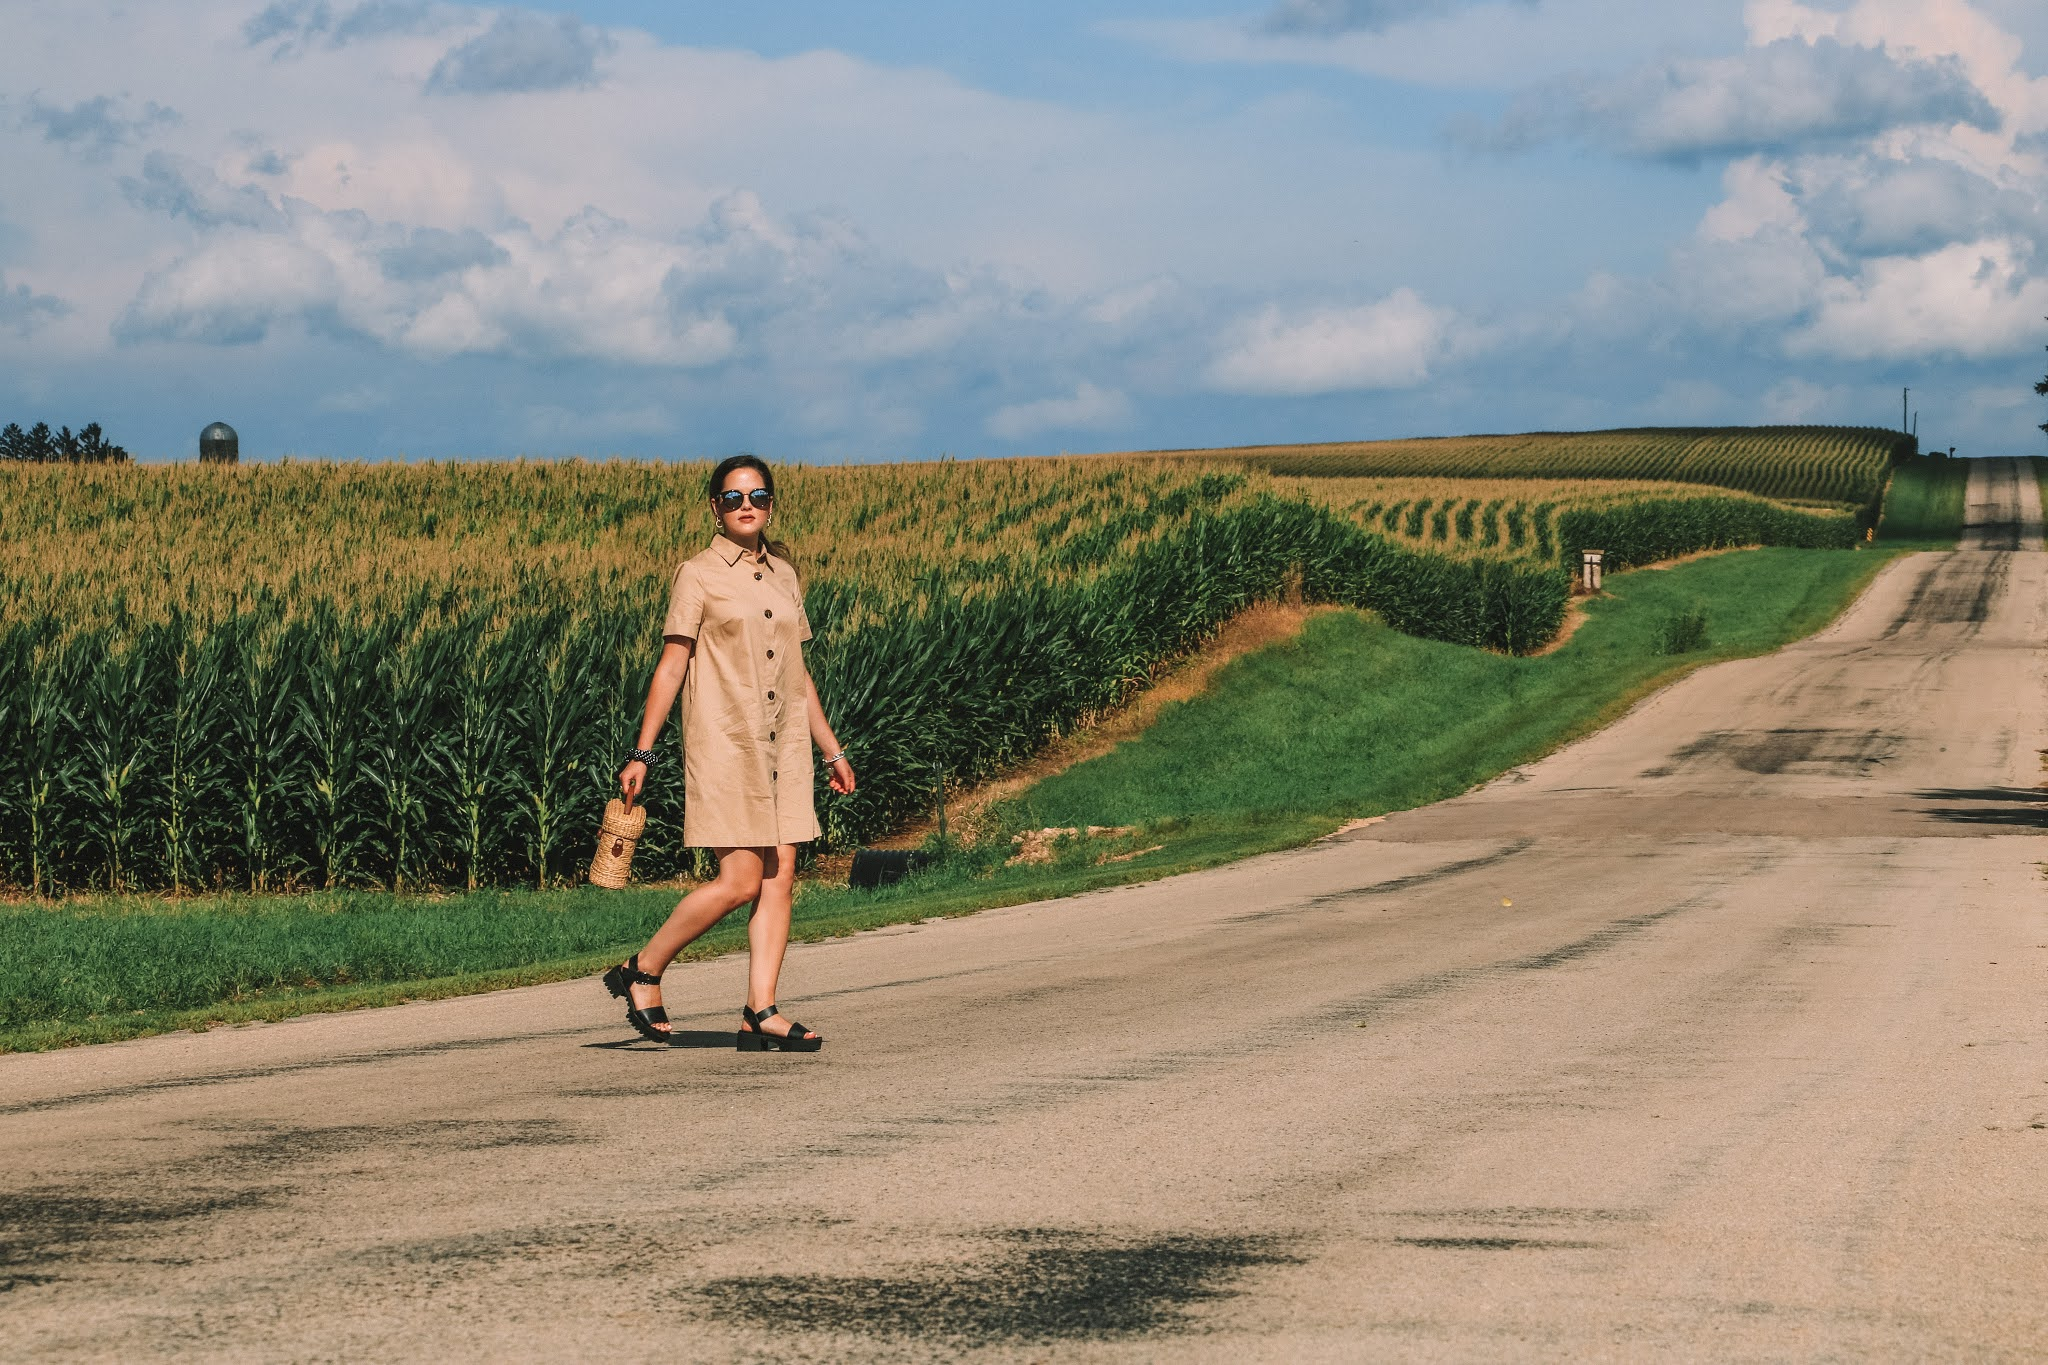 Fashion blogger Kathleen Harper doing a midwestern photo shoot in the middle of nowhere in Illinois.